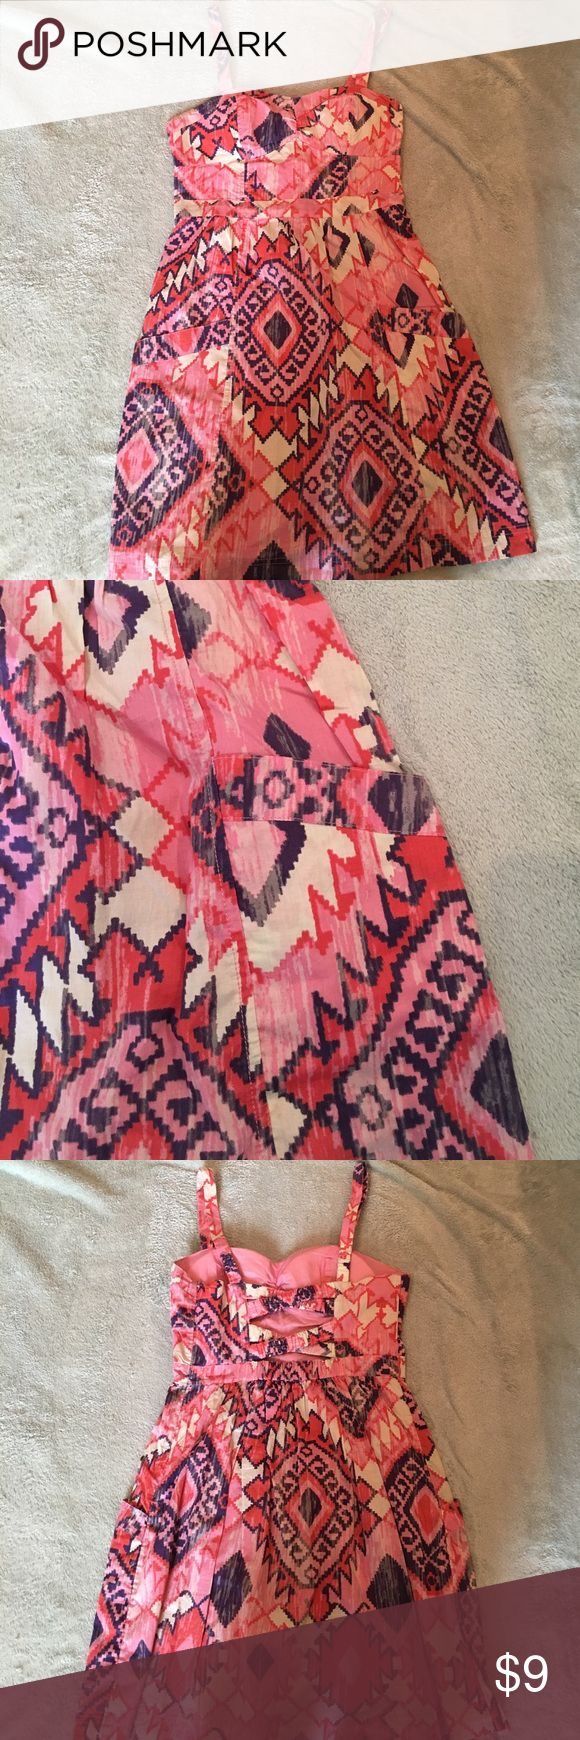 American eagle aztec print dress Fun print summer dress w pockets! Cute zig zag detail on back. Size 4. Great condition. American Eagle Outfitters Dresses Mini